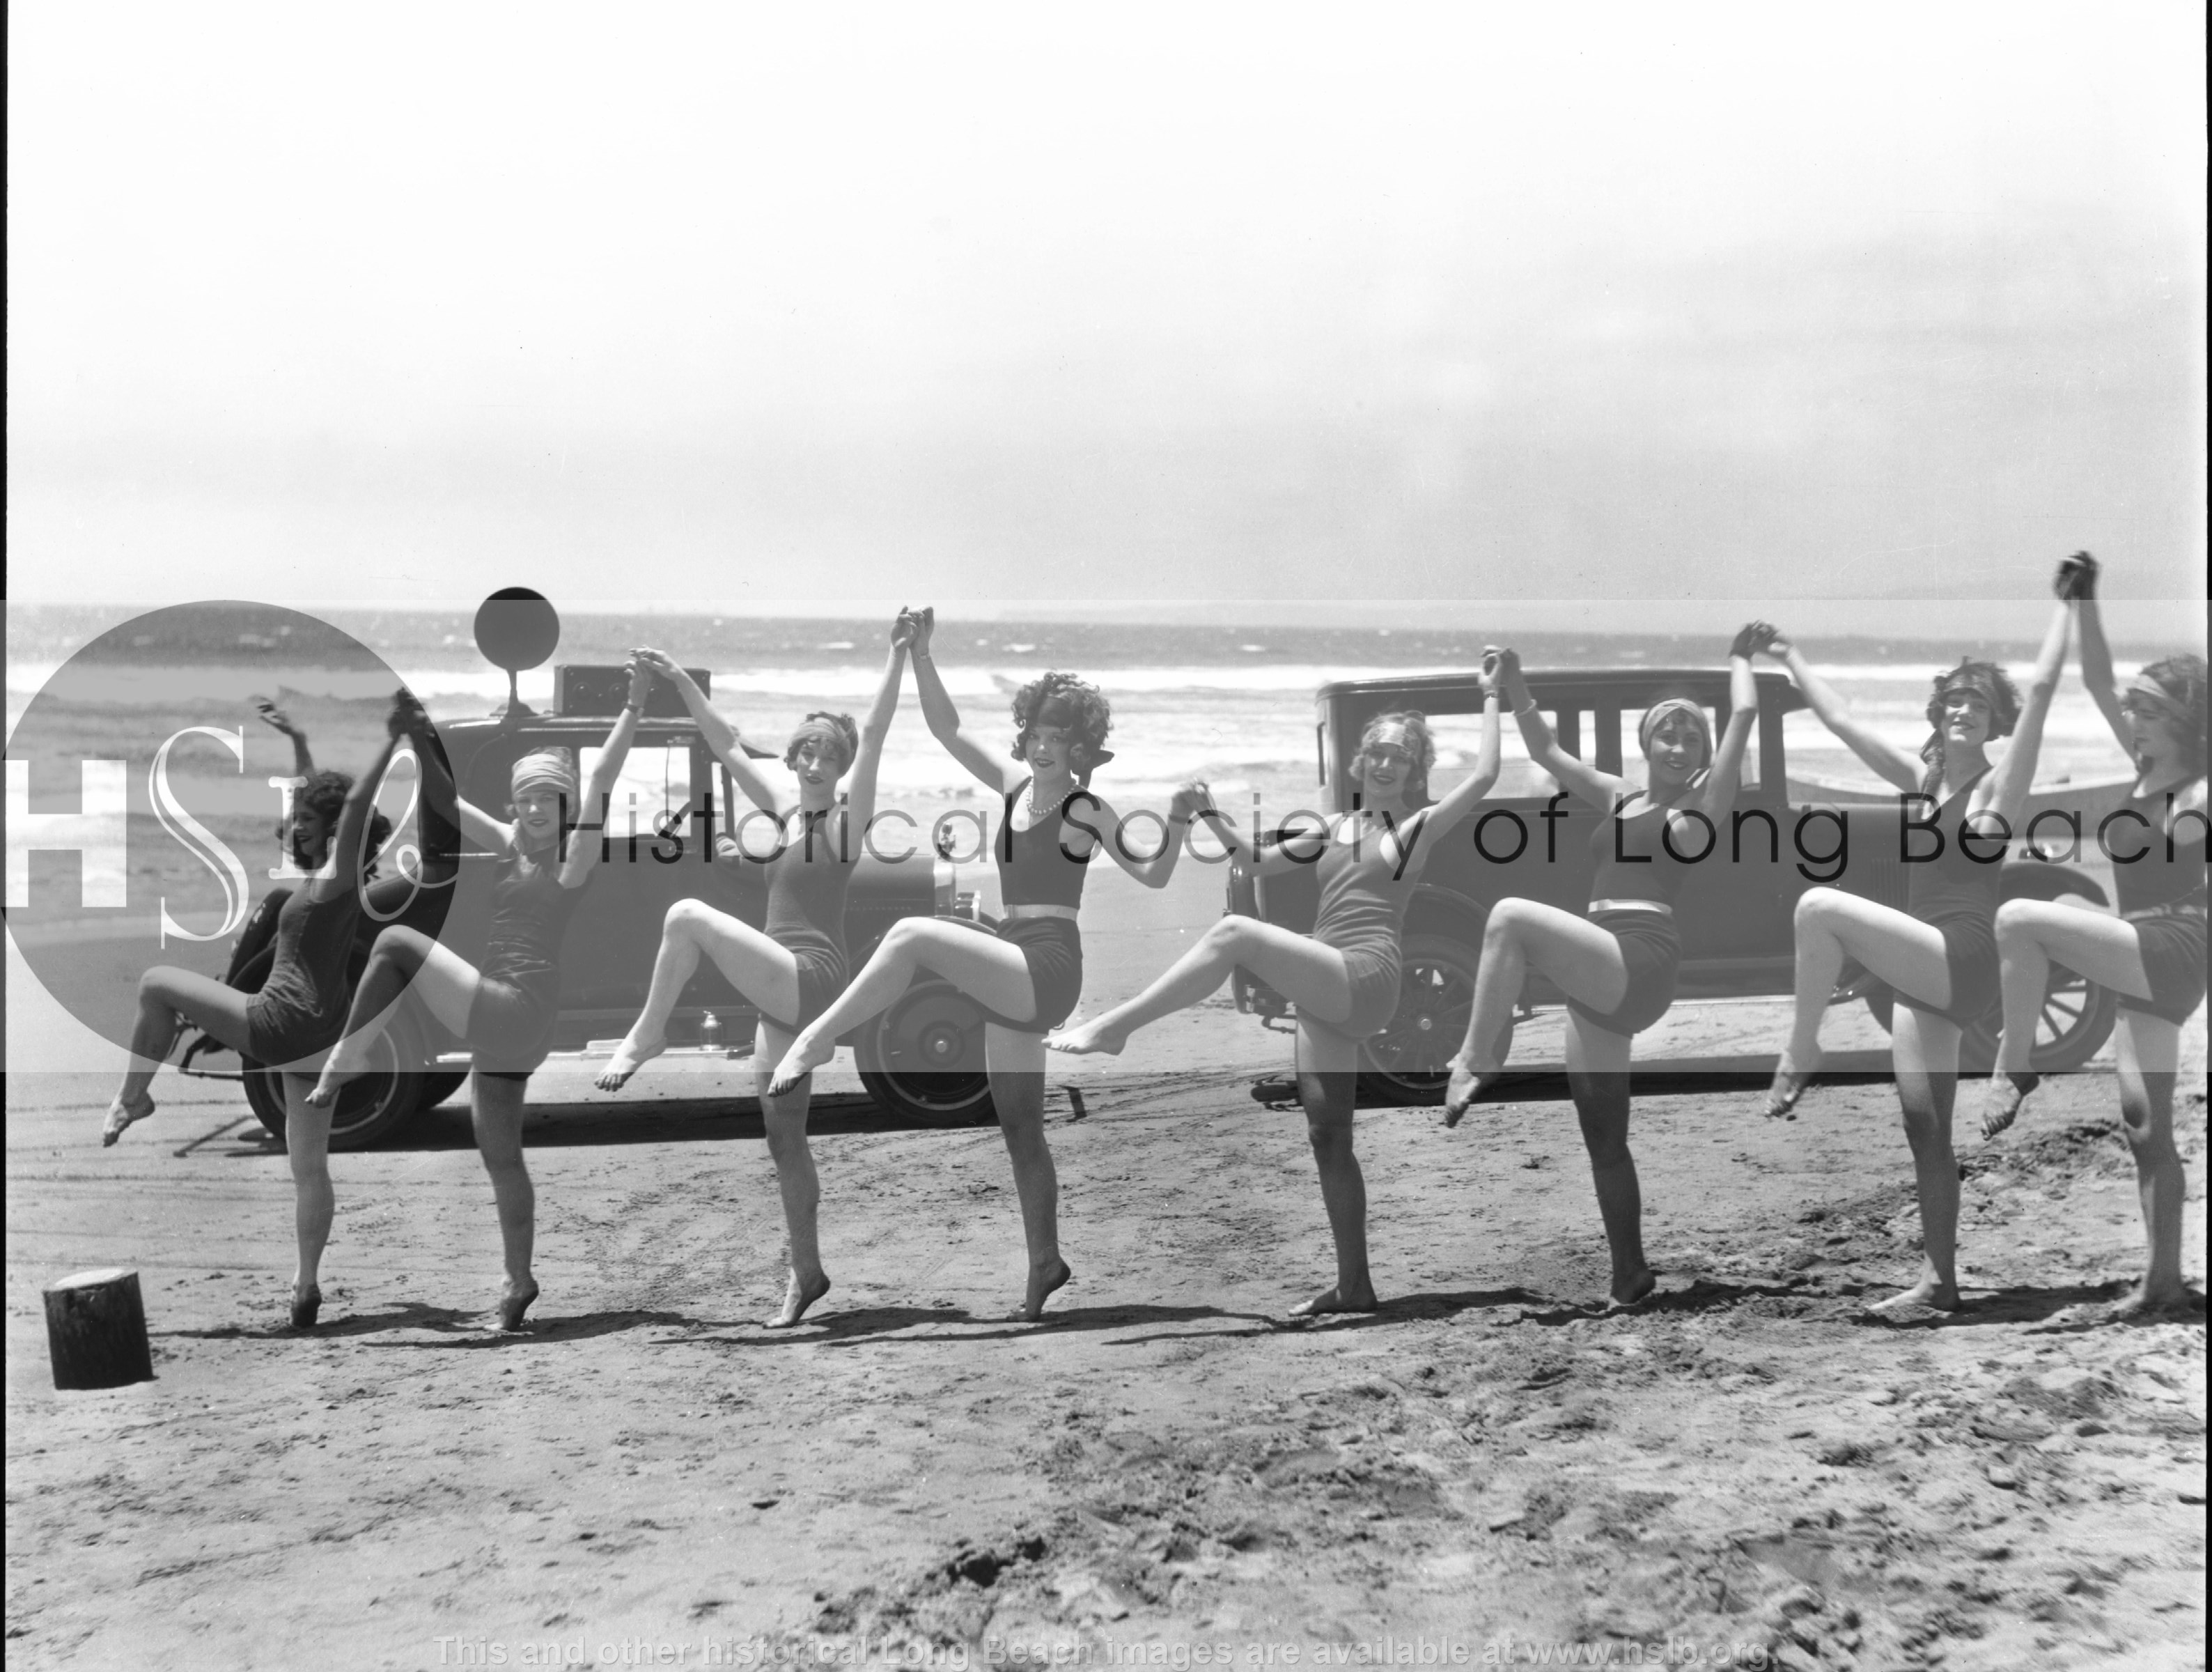 Bathers dancing, 1925 vintage photograph